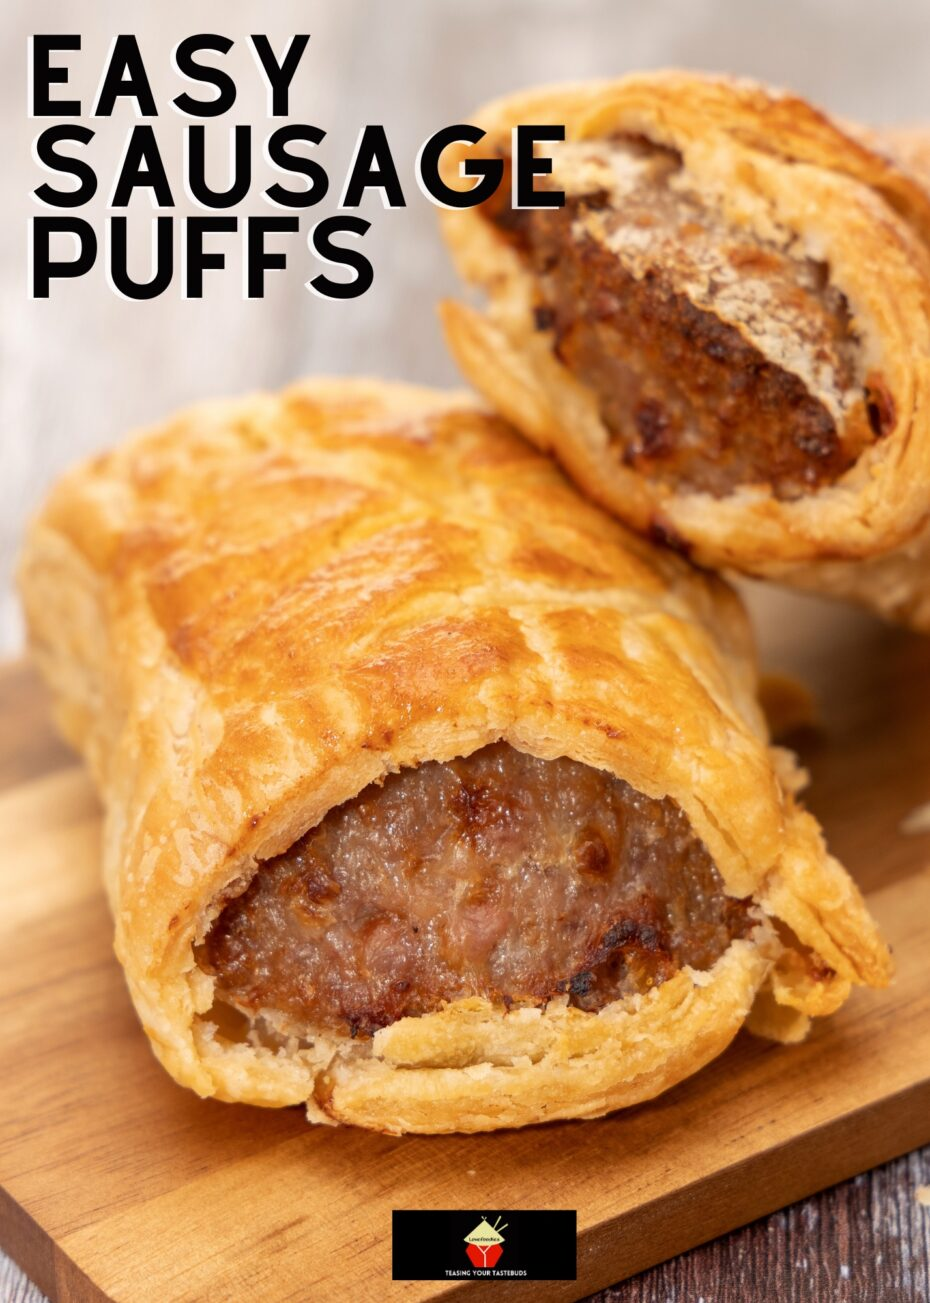 Easy Sausage Puffs, deliciously seasoned sausage meat wrapped in crispy puff pastry and baked. Easy recipe, great for parties, lunch boxes, picnics. Eat warm or cold, they're so tasty!